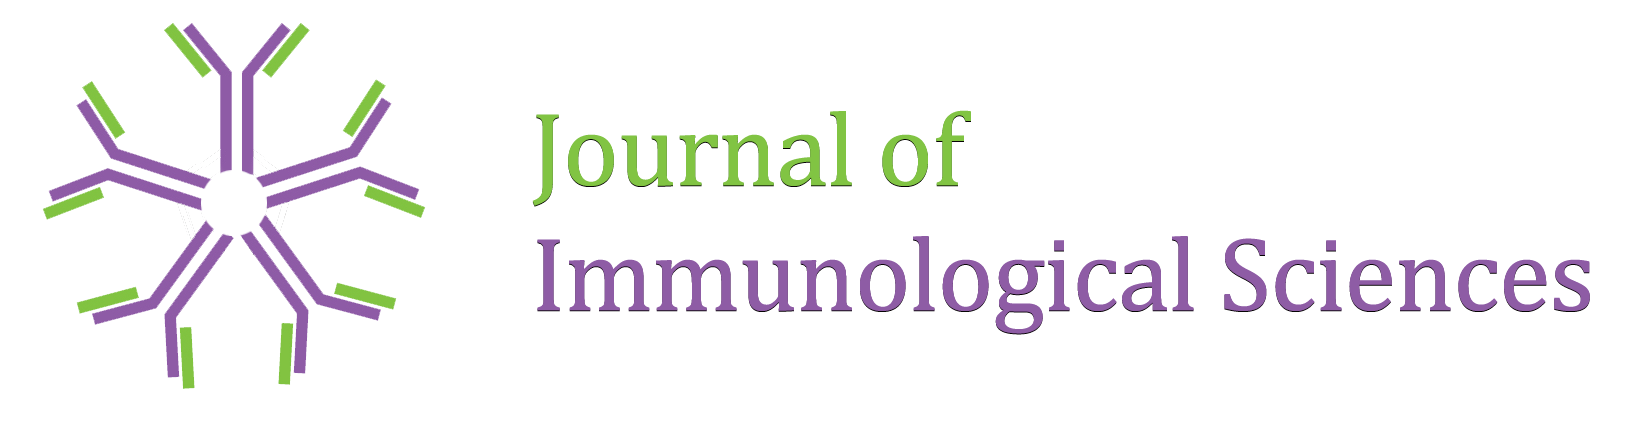 journal-of-immunological-sciences-indeximage.png